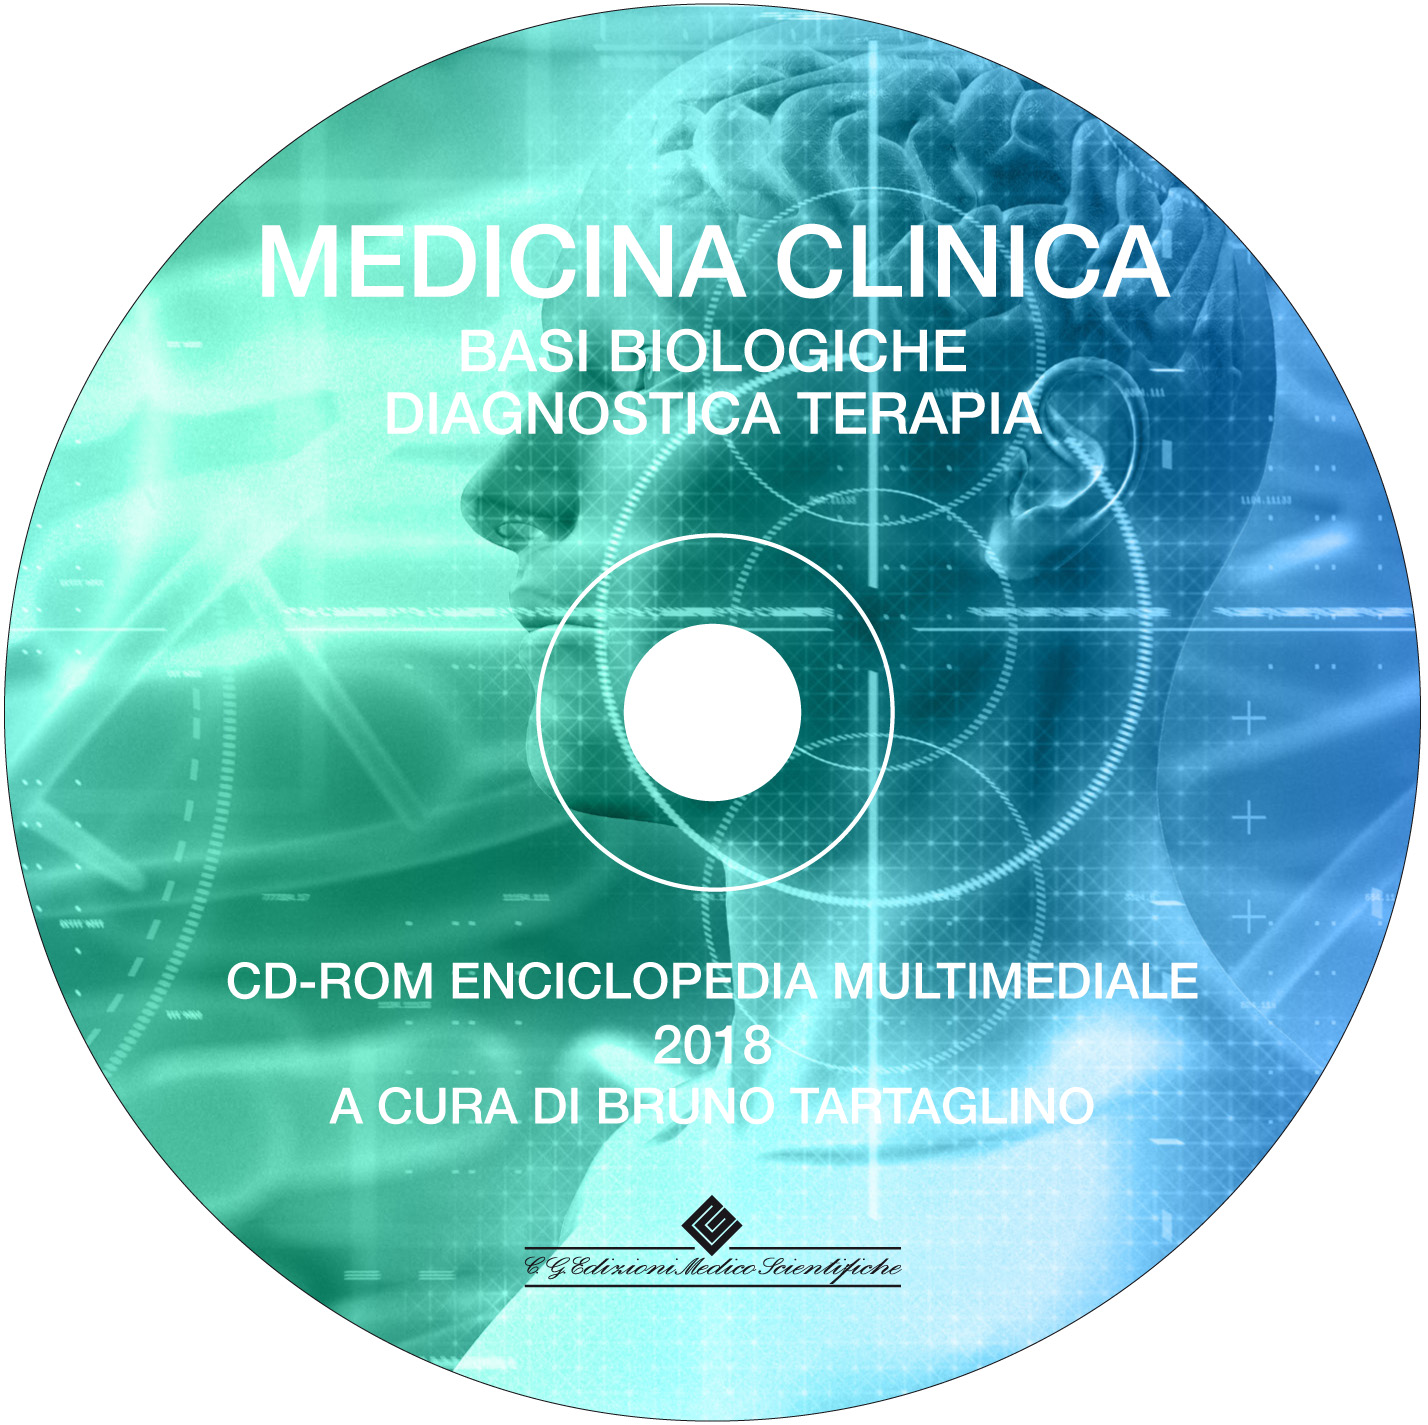 Medicina Clinica 2018 - Basi biologiche Diagnostica Terapia CD Rom